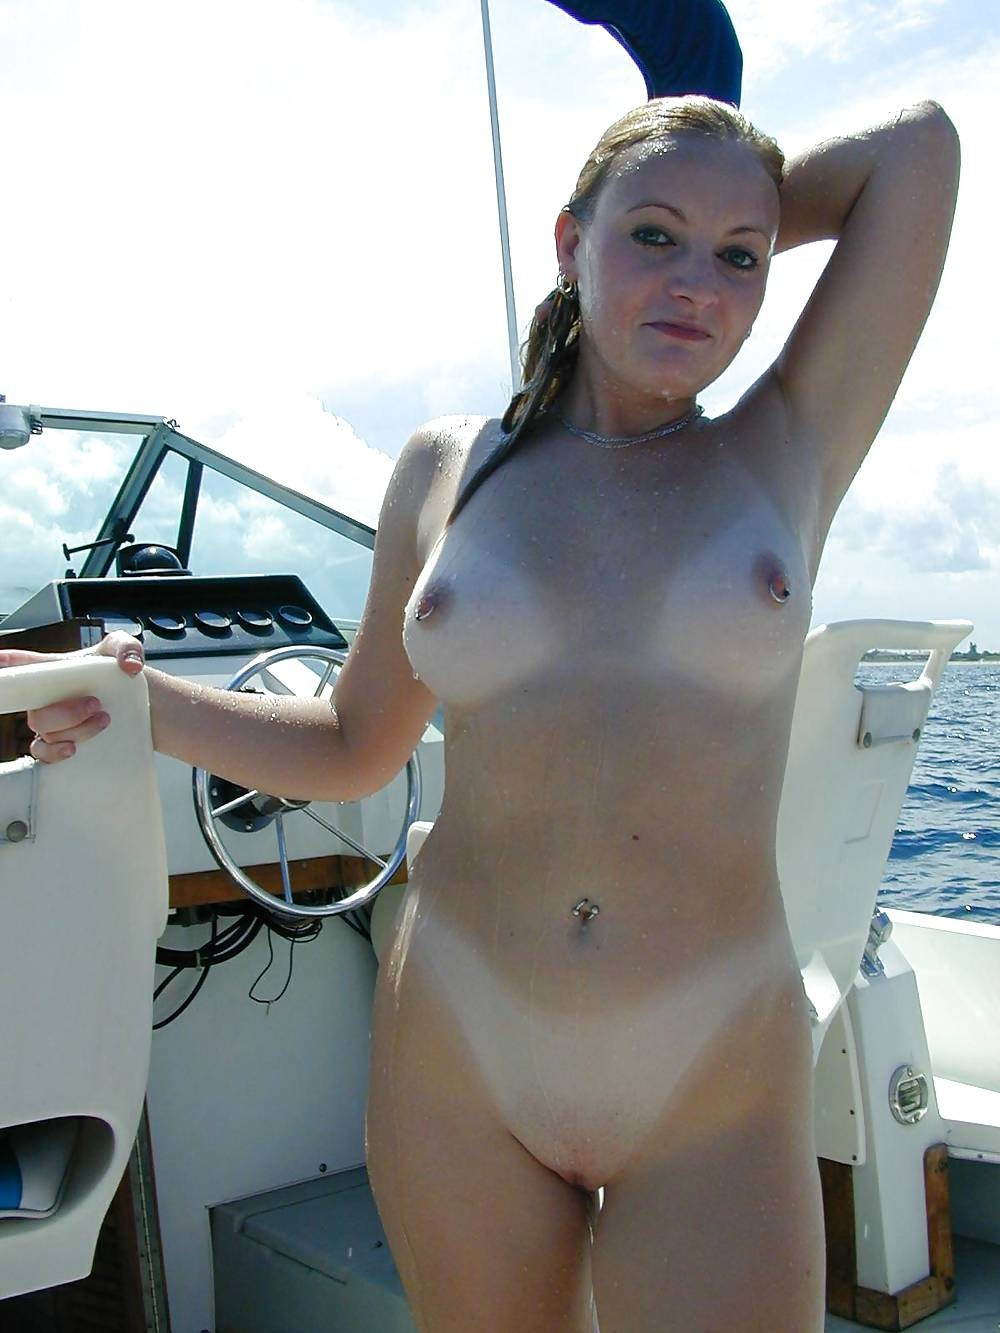 nude-in-crazy-places